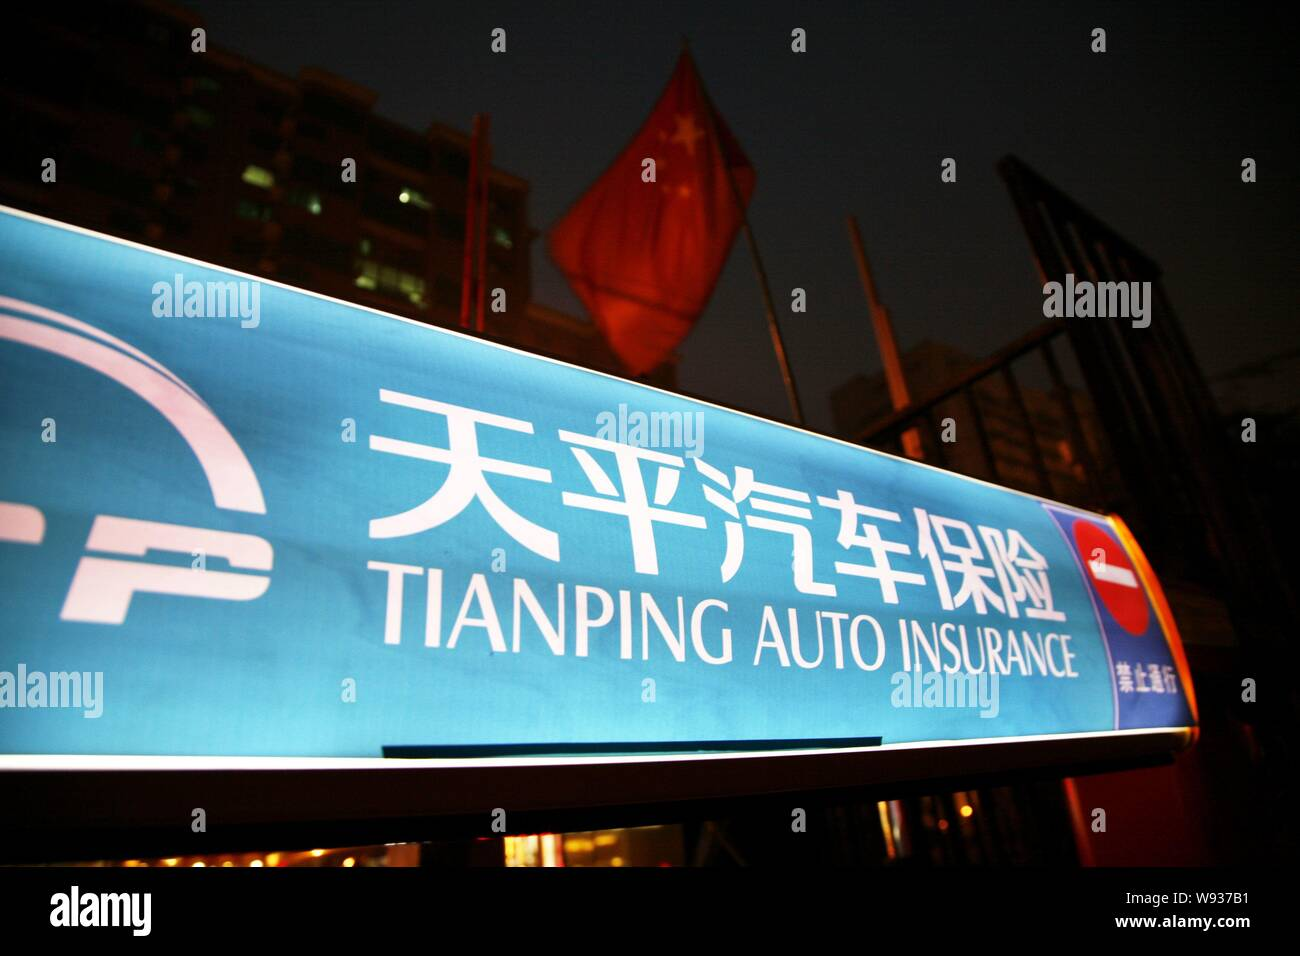 File View Of An Advertisement Of Tianping Auto Insurance In Beijing China 30 August 2012 French Insurer Axa Group Plans To Acquire A 50 Percen Stock Photo Alamy